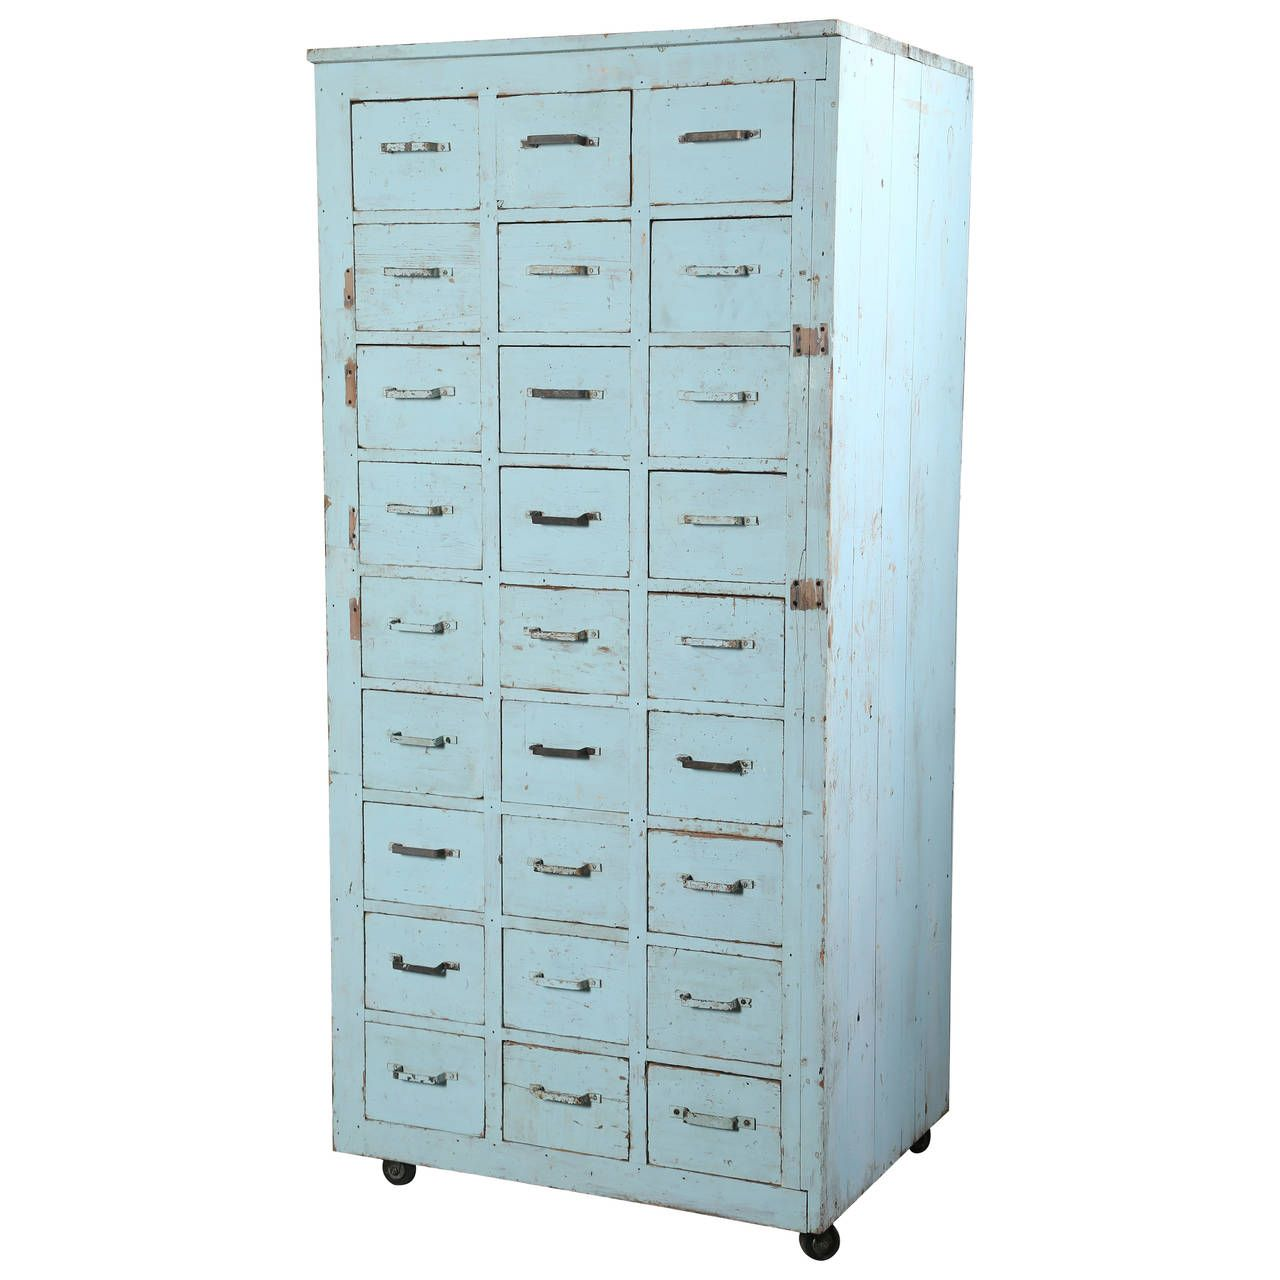 Antique Storage Cabinets Vintage Multi Drawer Wooden Storage Rolling Apothecary Distressed